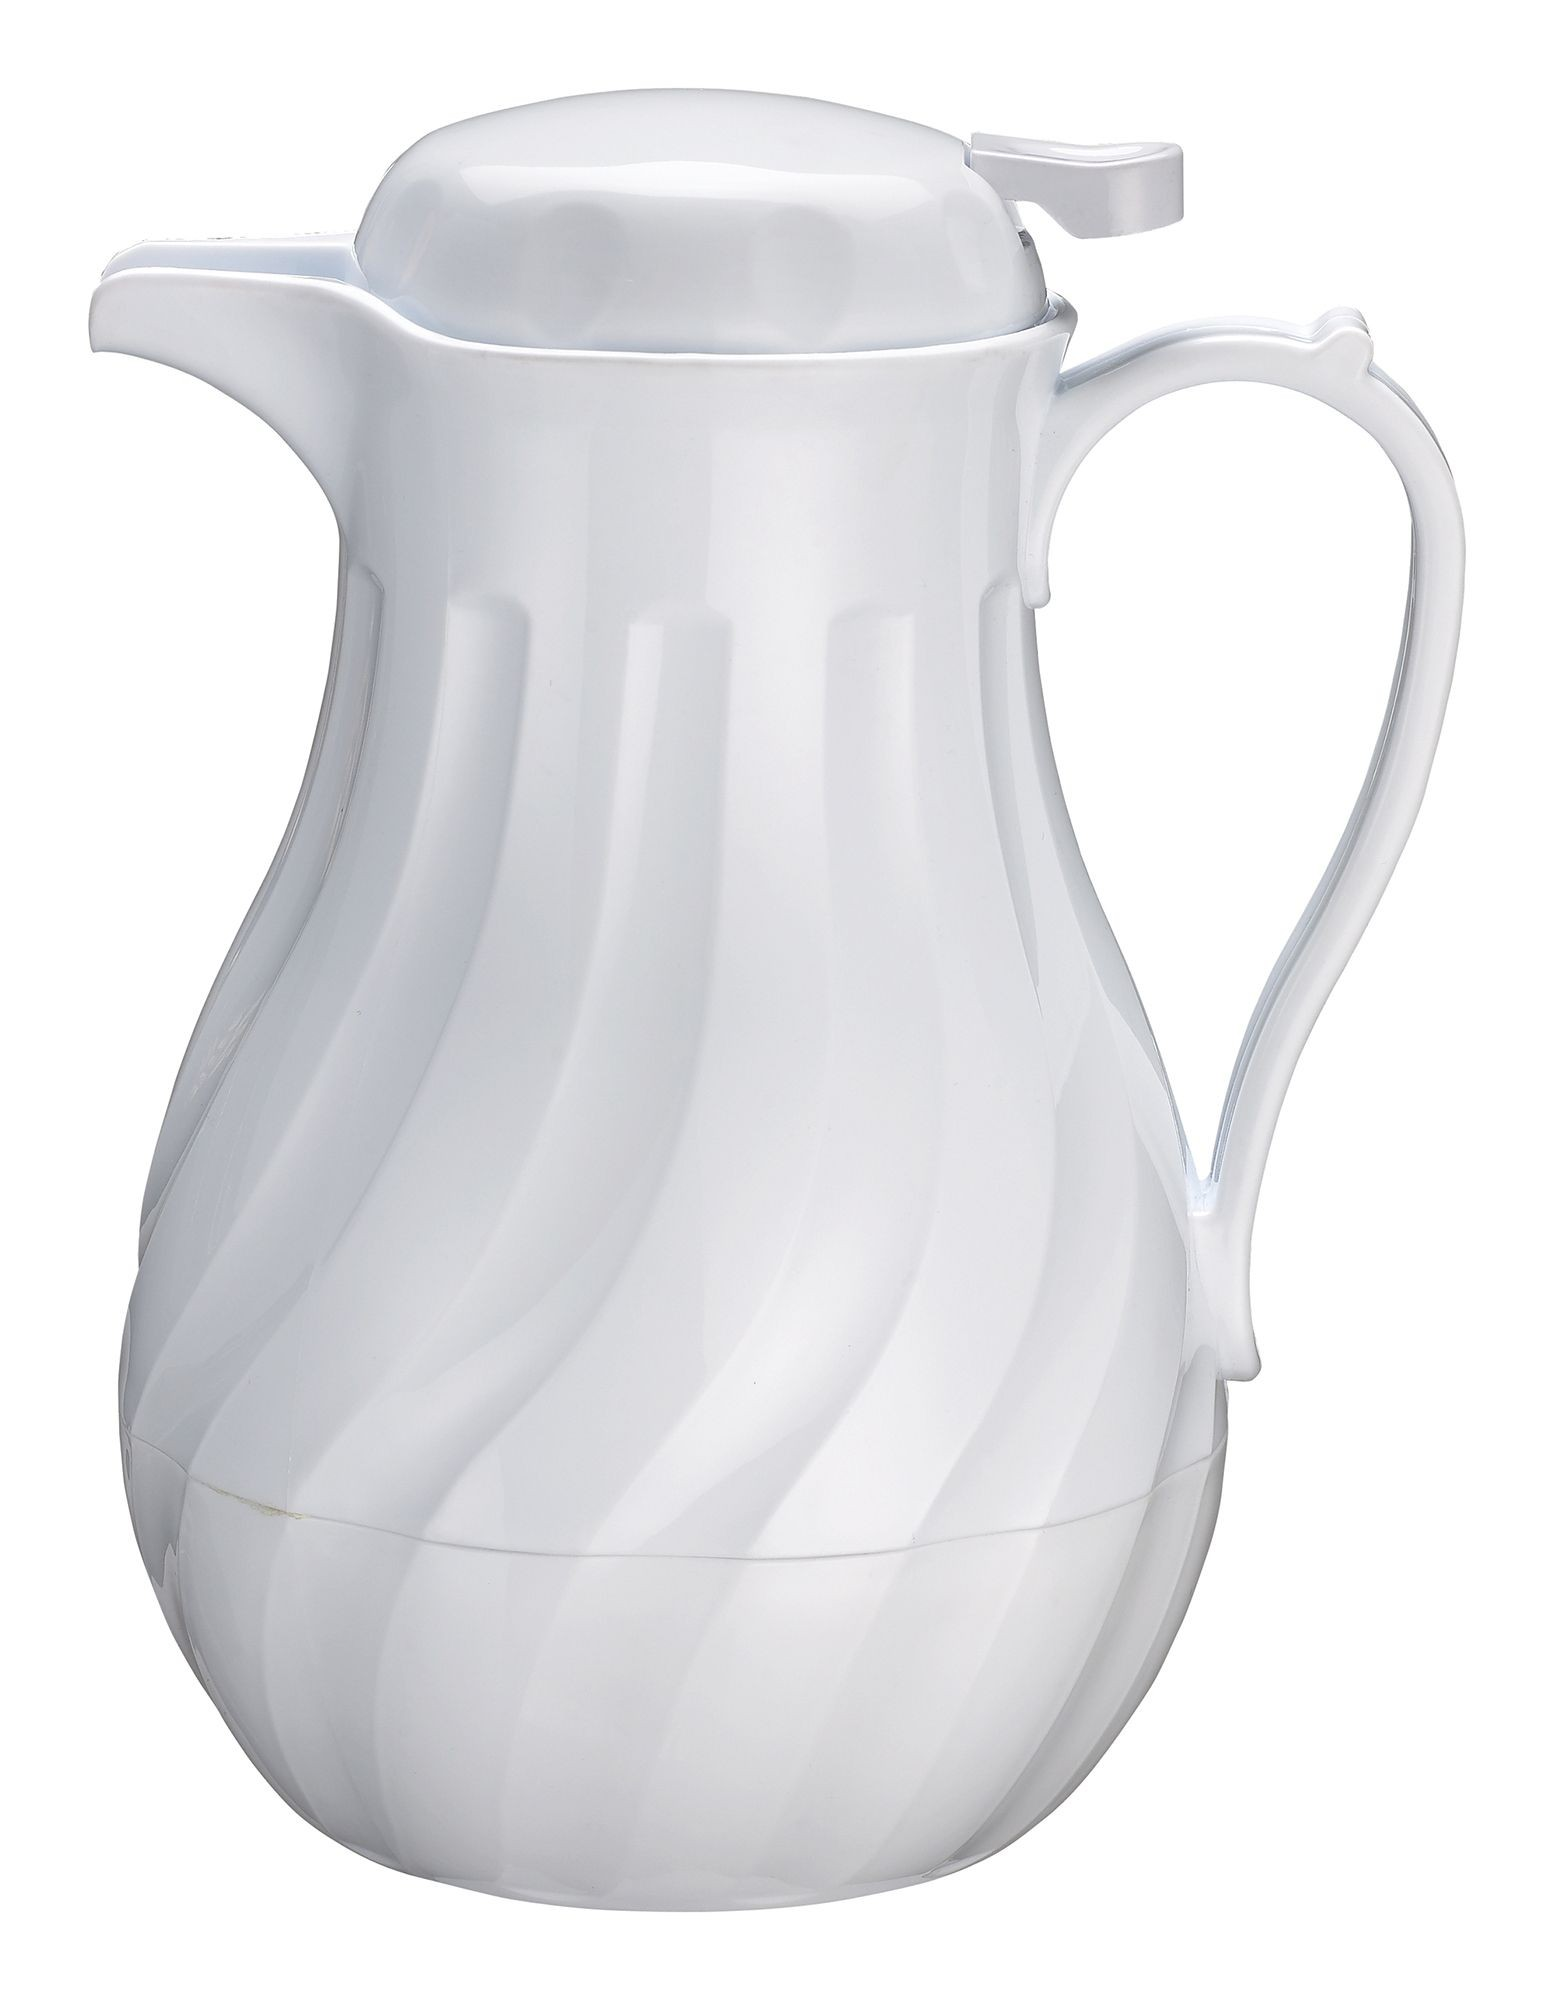 Winco VSW-20W White Insulated Swirl Design Beverage Server 20 oz.